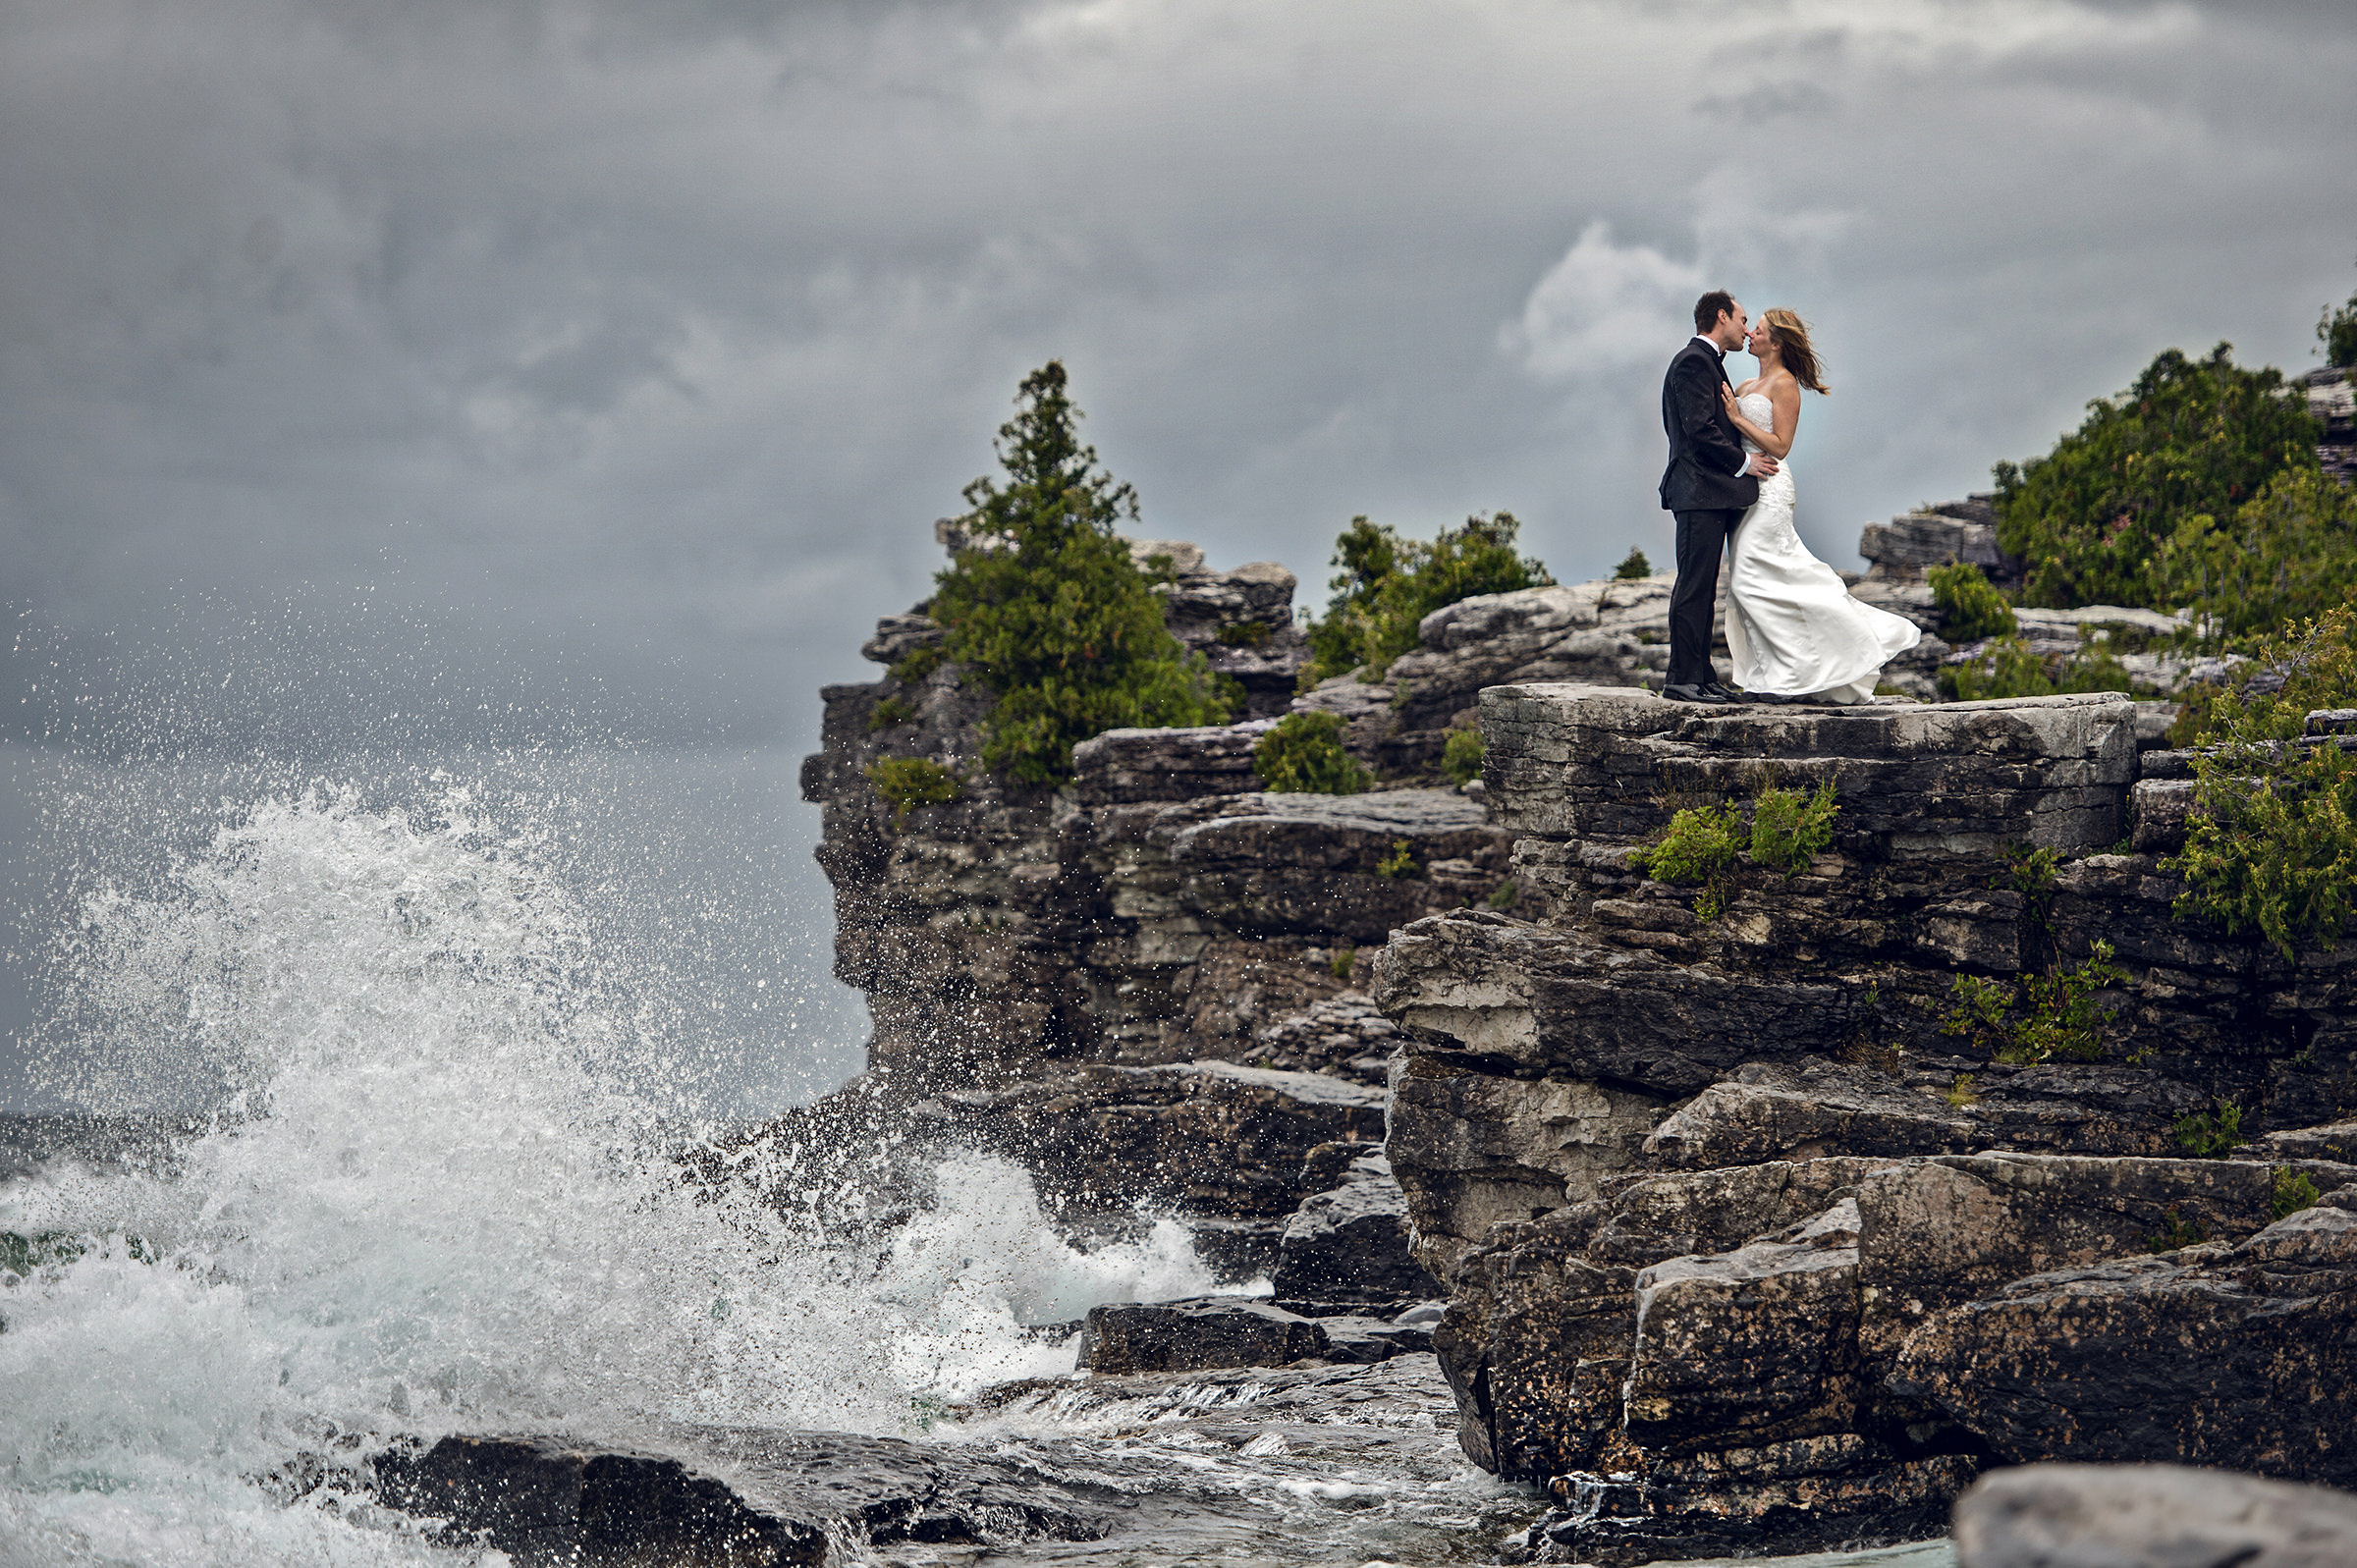 couple-kissing-on-cliffs-by-surf-david-sherry-photography